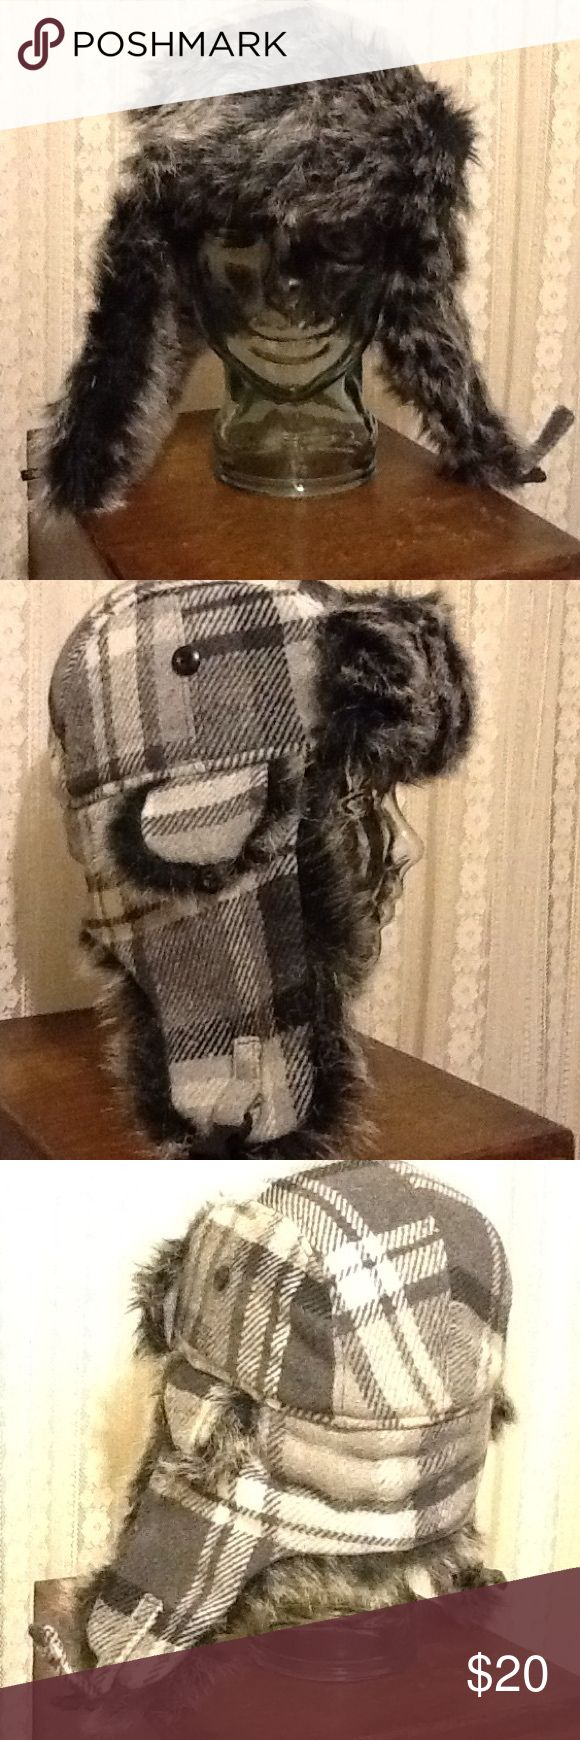 Black Gray Plaid Hipster Hat With Flaps Cool winter hat to keep you warm on those chilly days that are coming. In great condition. Flaps up or flaps down. One size fits most. U3i Accessories Hats